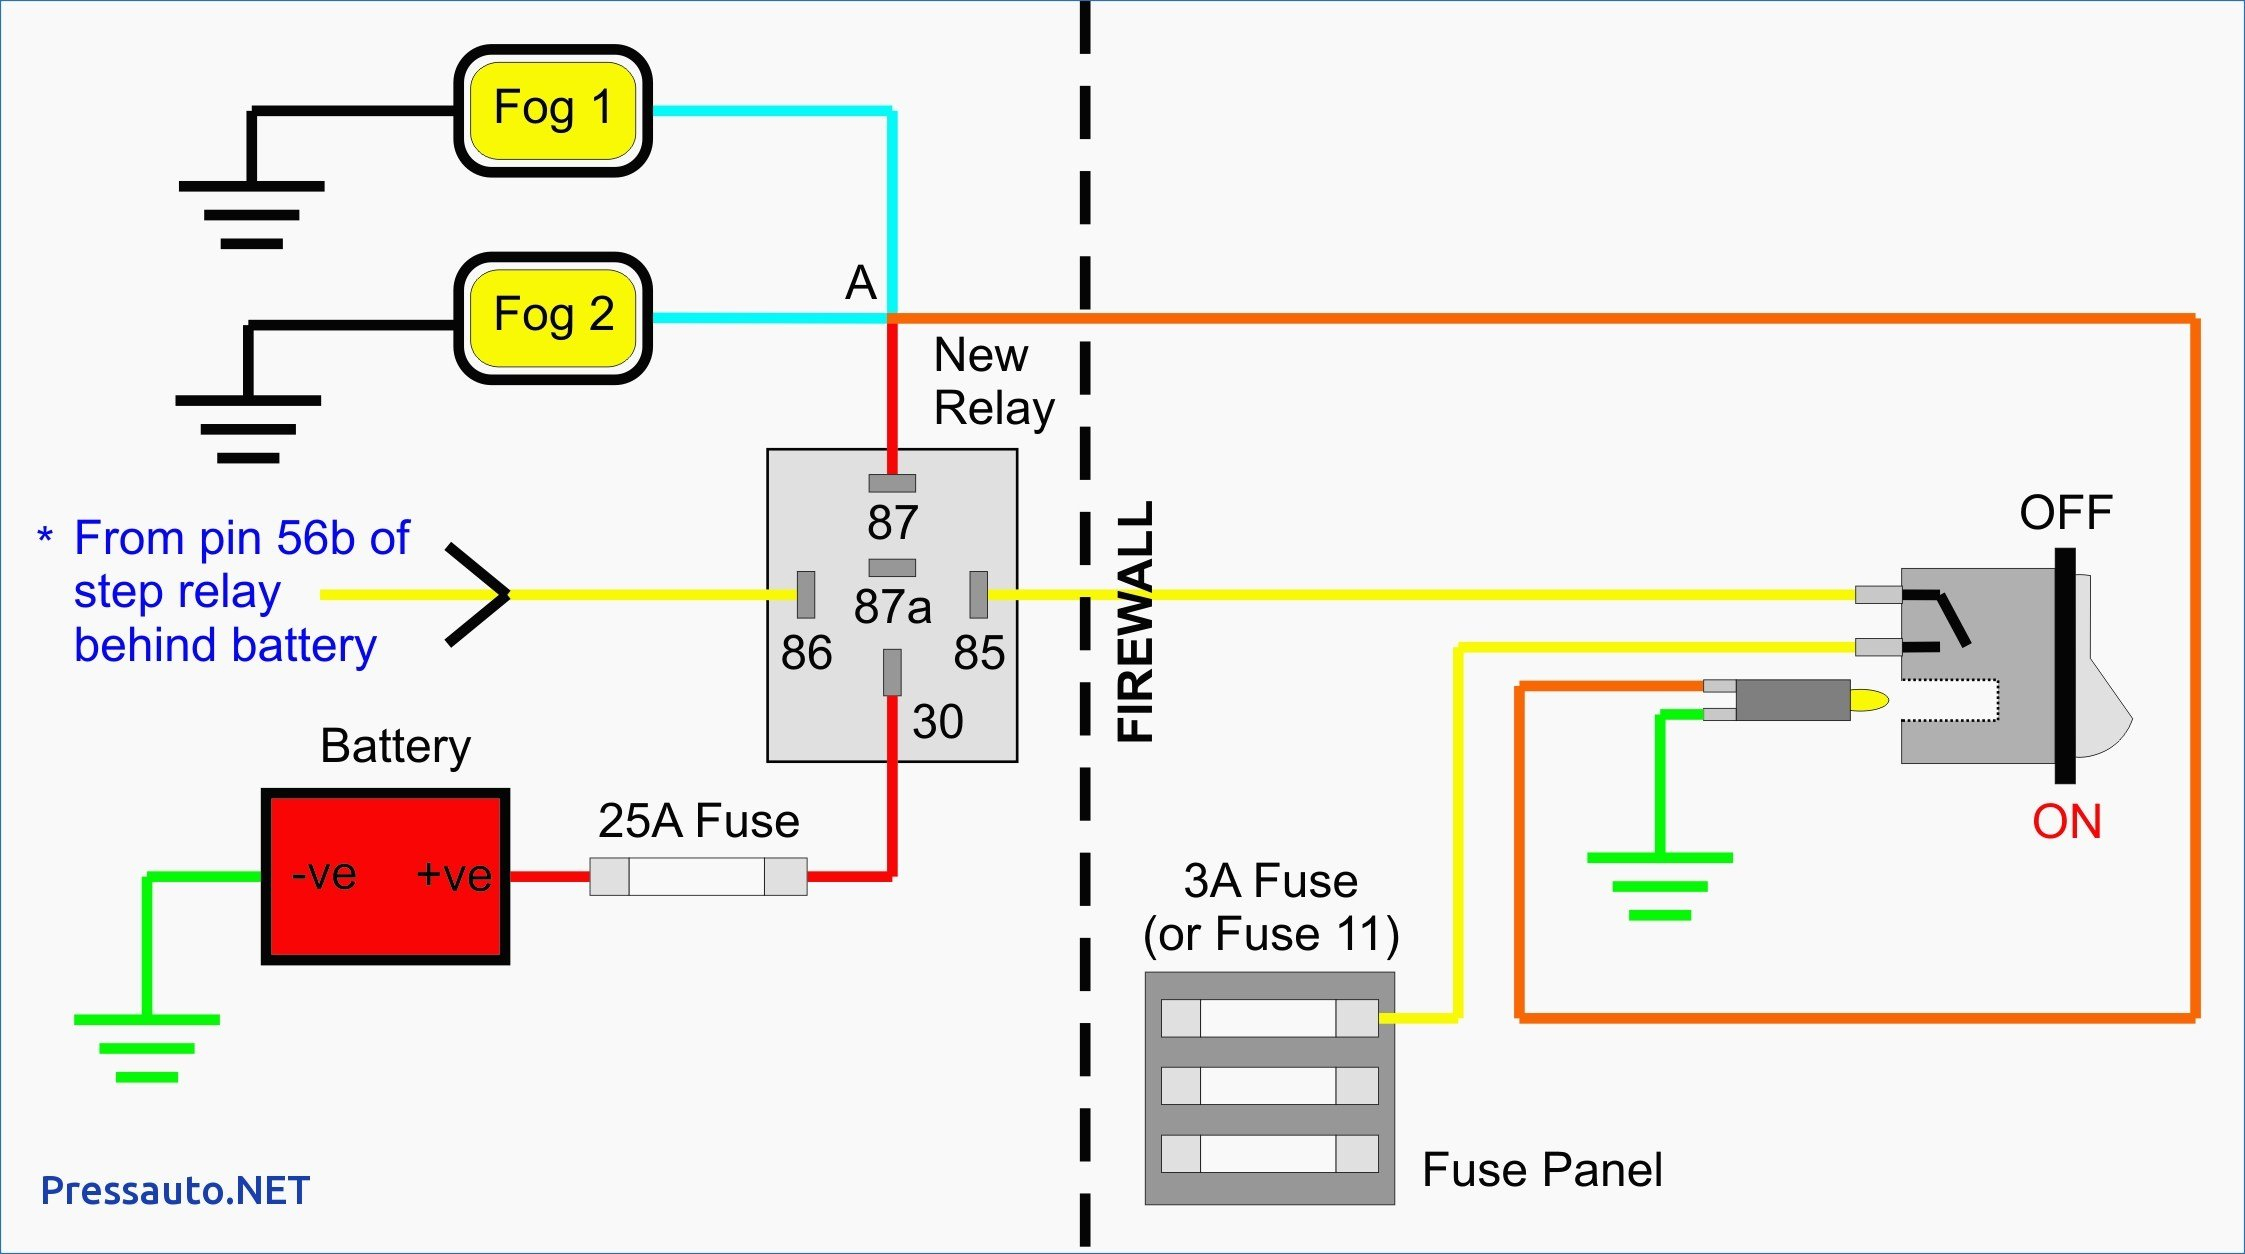 8 Pin Ice Cube Relay Wiring Diagram | Wiring Diagram - Ice Cube Relay Wiring Diagram